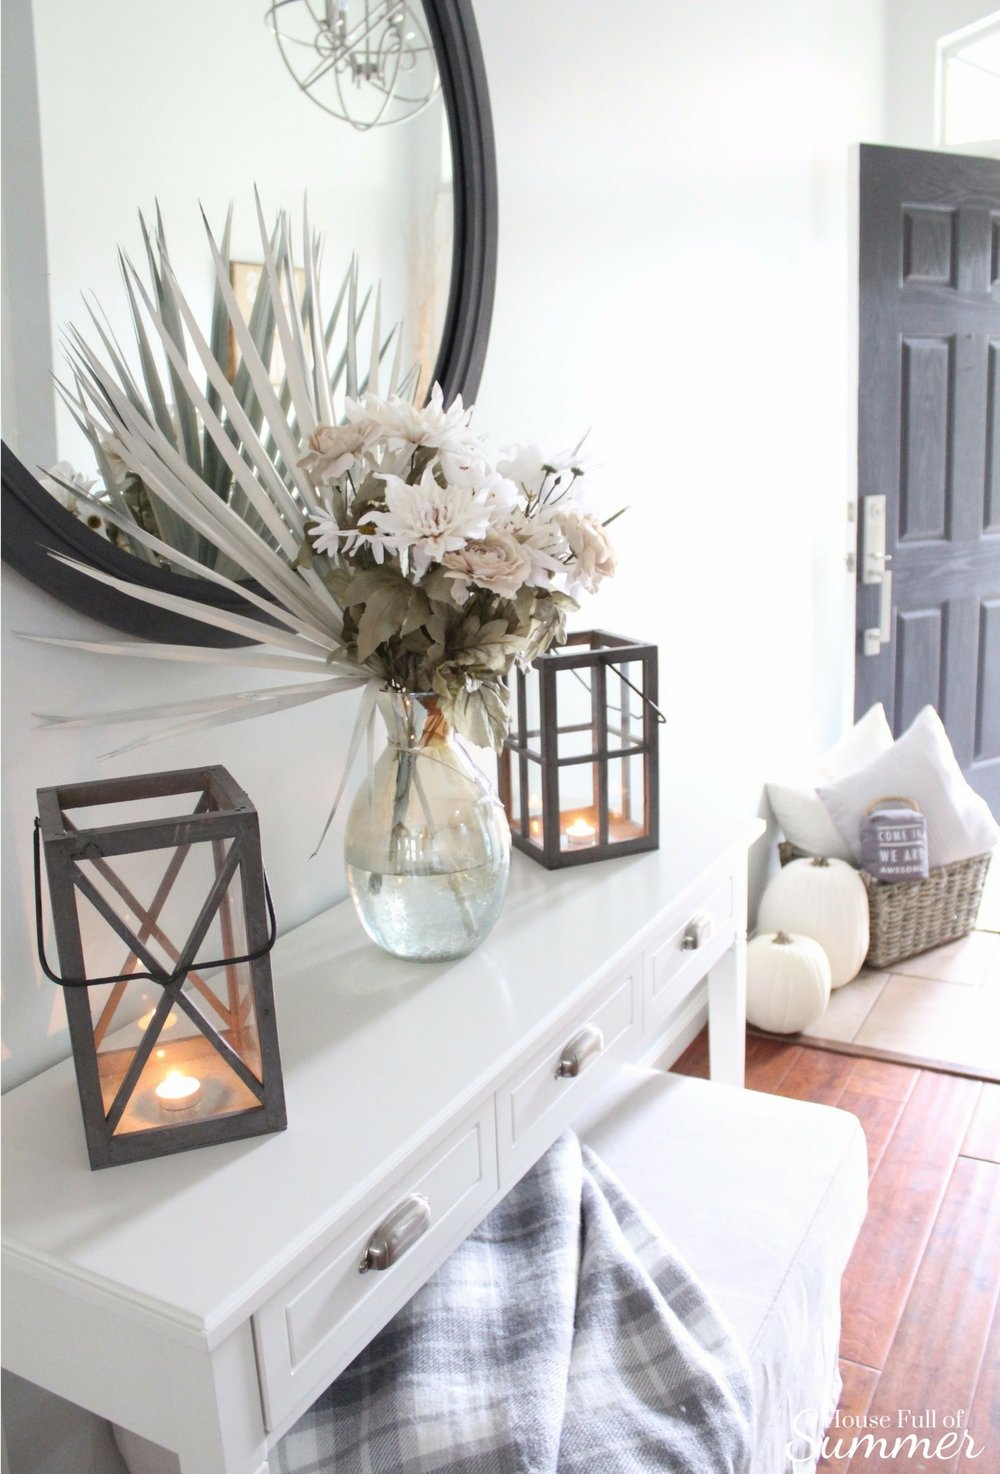 Coastal Chic Fall Home Tour {Blog Hop} — House Full of Summer